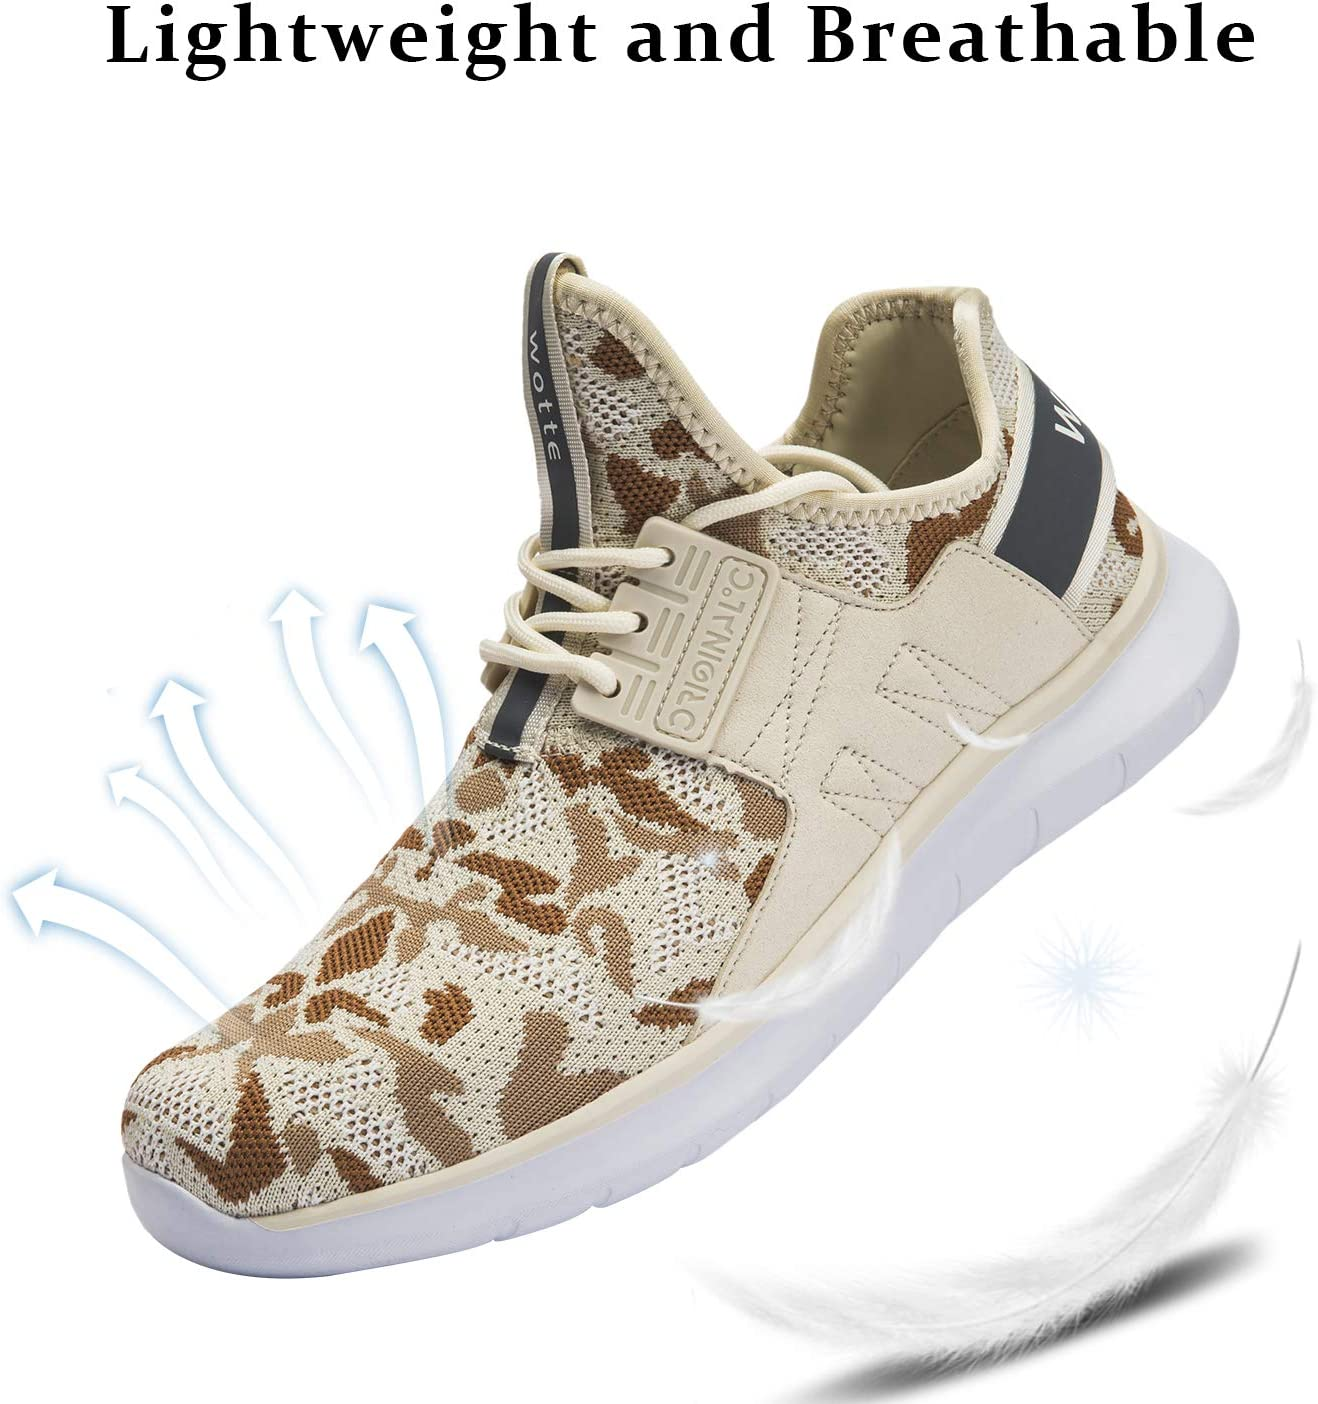 MAYI Chaussure De Sport Hommes Running Baskets Chaussures L/éger Respirante Gym Fitness Sneakers